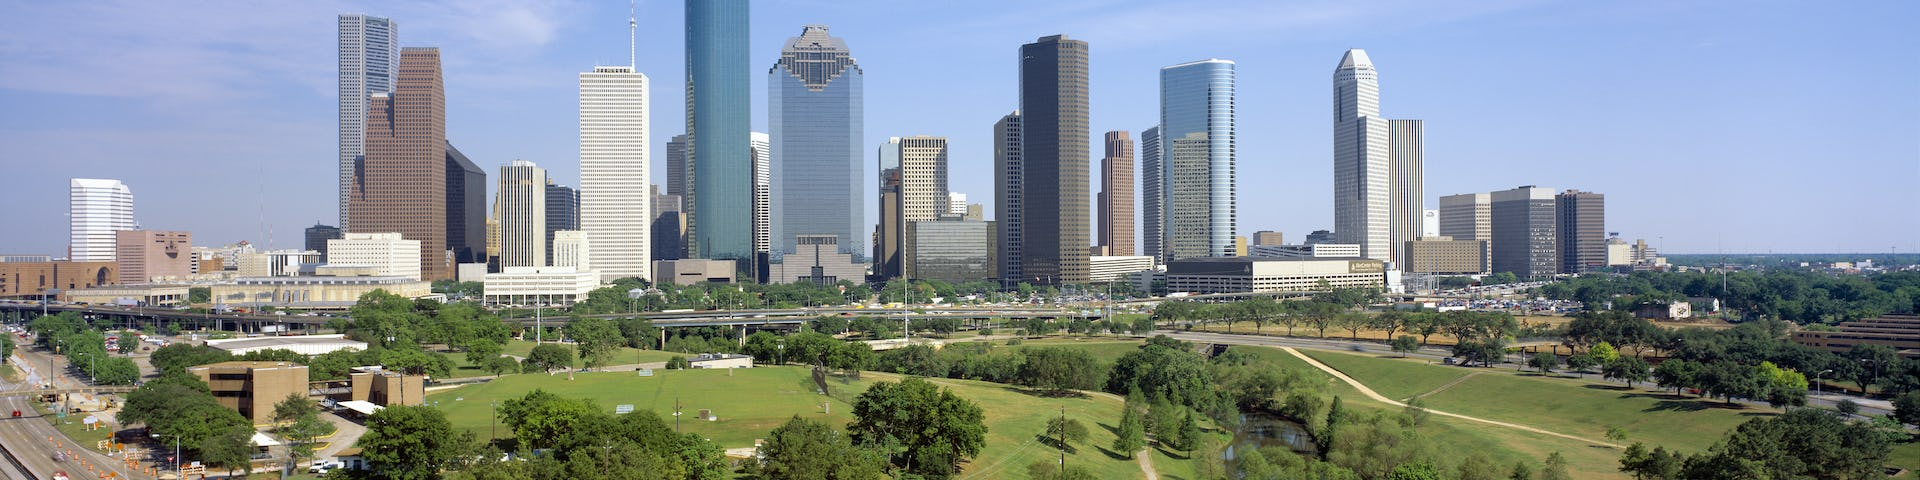 Study Short Courses in Houston, Texas, United States